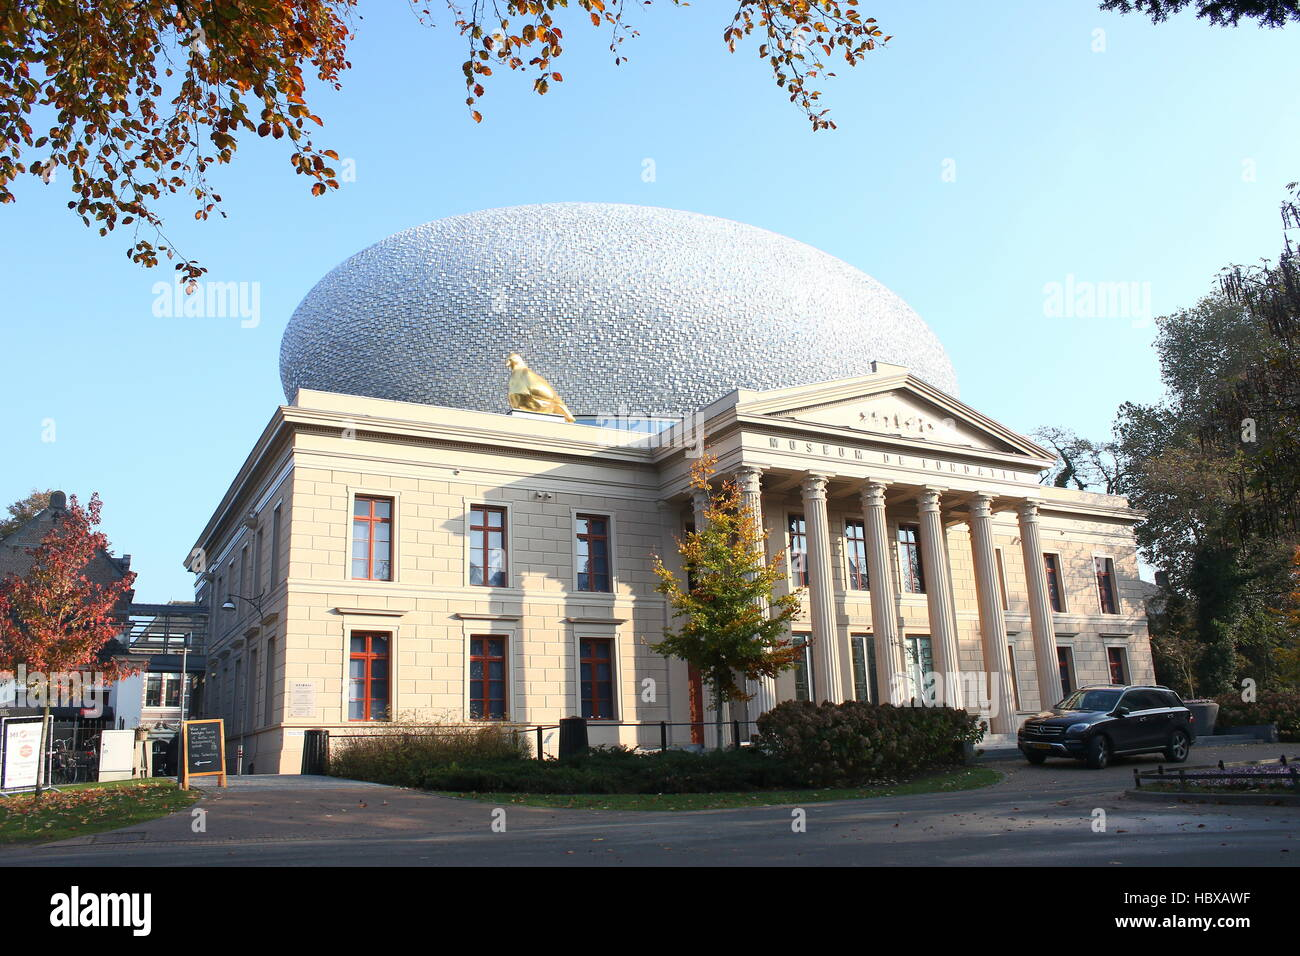 Museum De Fundatie, museum for the visual arts in Zwolle, Netherlands - Stock Image